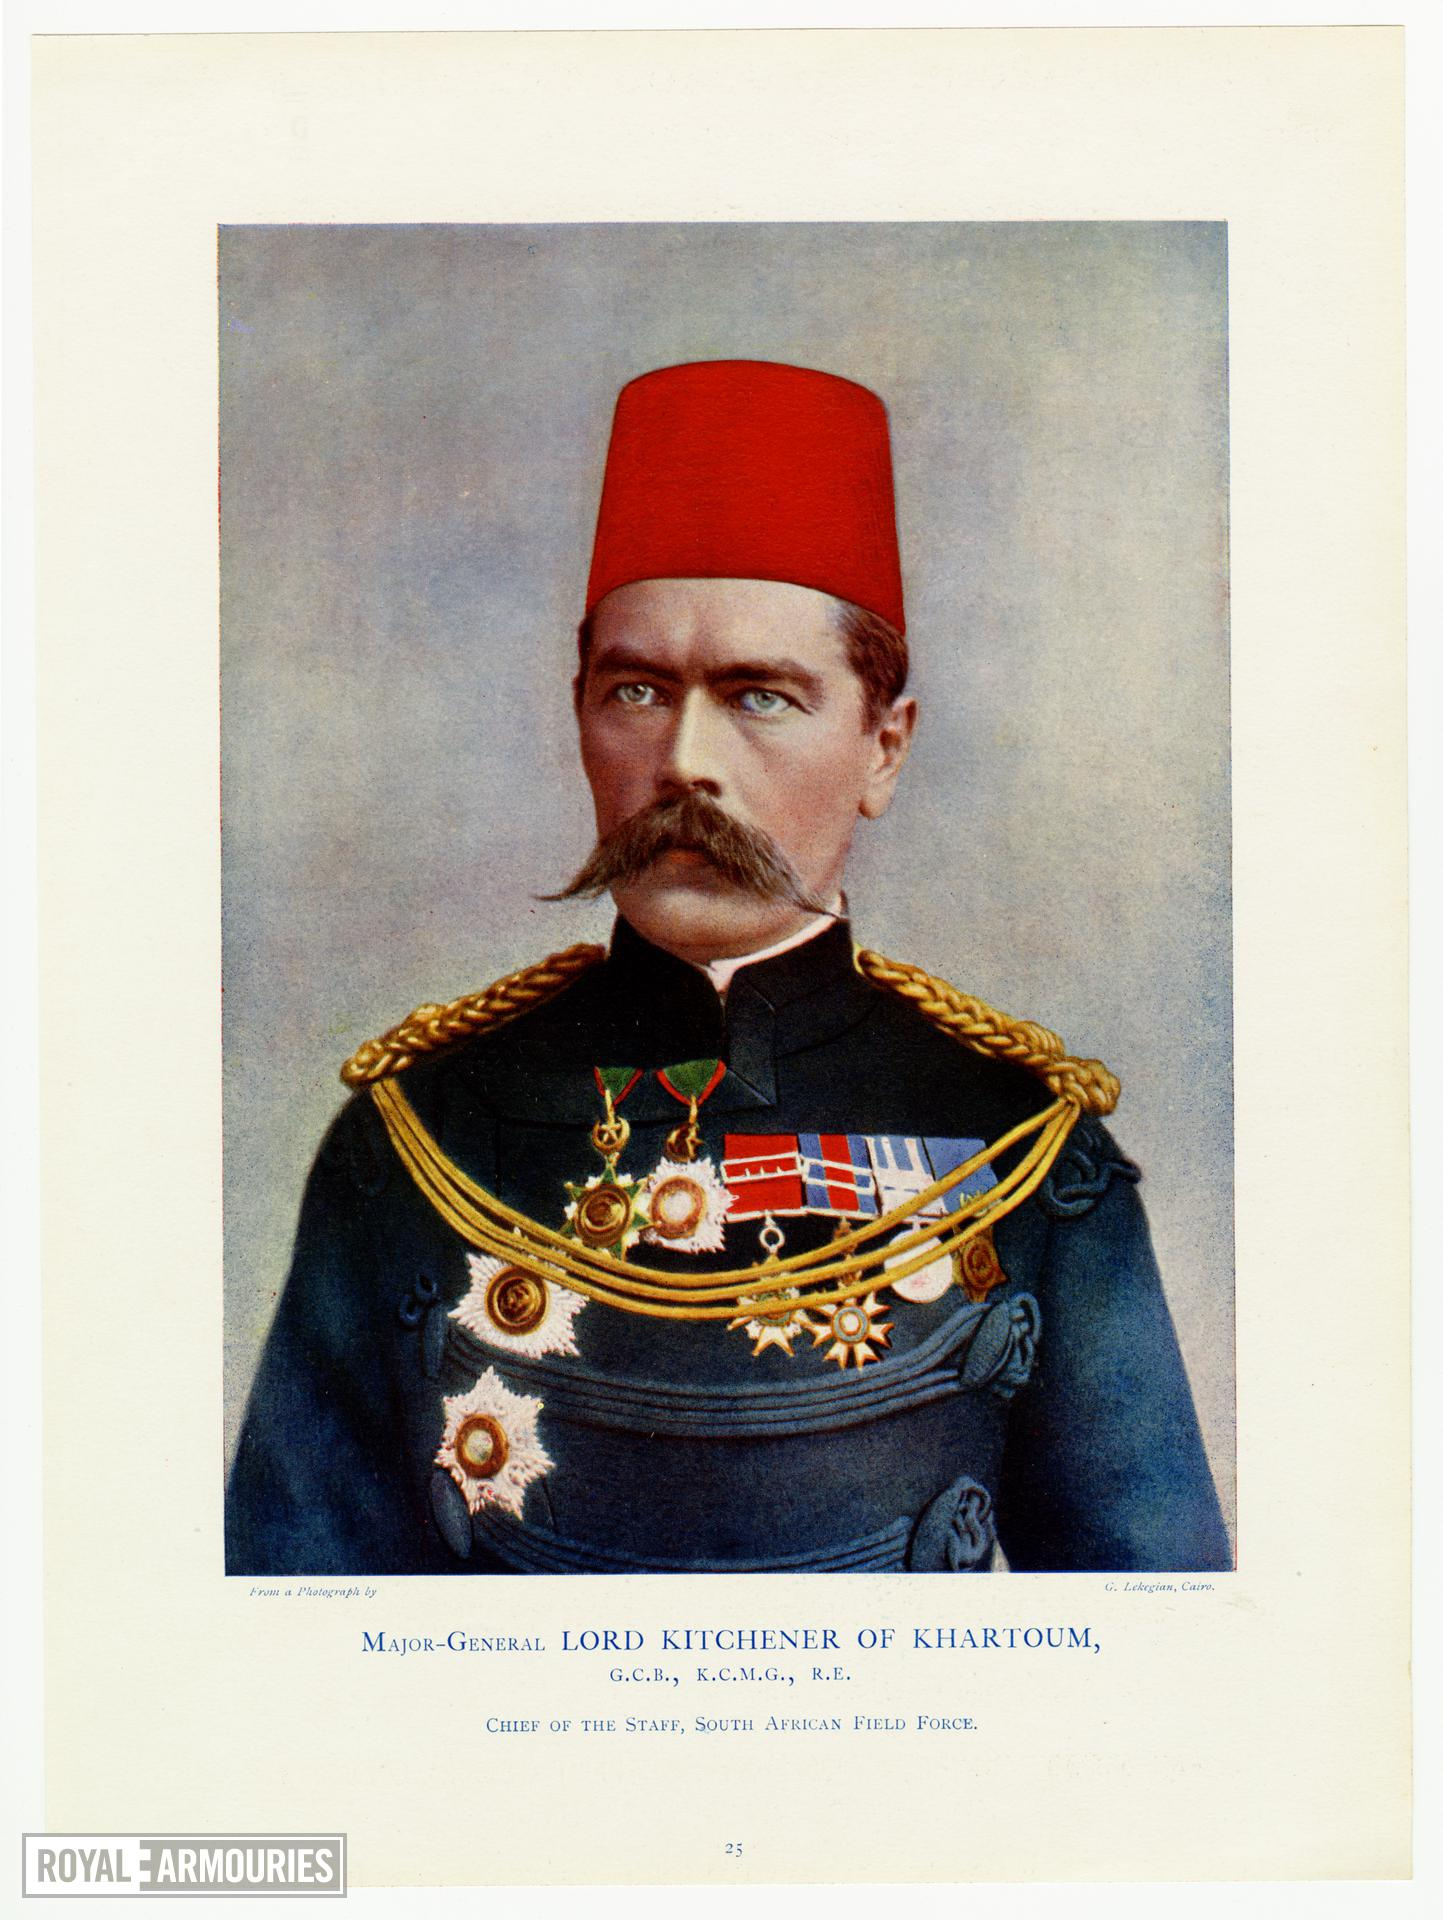 Print of Major General Lord Kitchener of Khartoum, G.C.B, K.C.M.G., R.E., Chief of the Staff, South African Field Force.